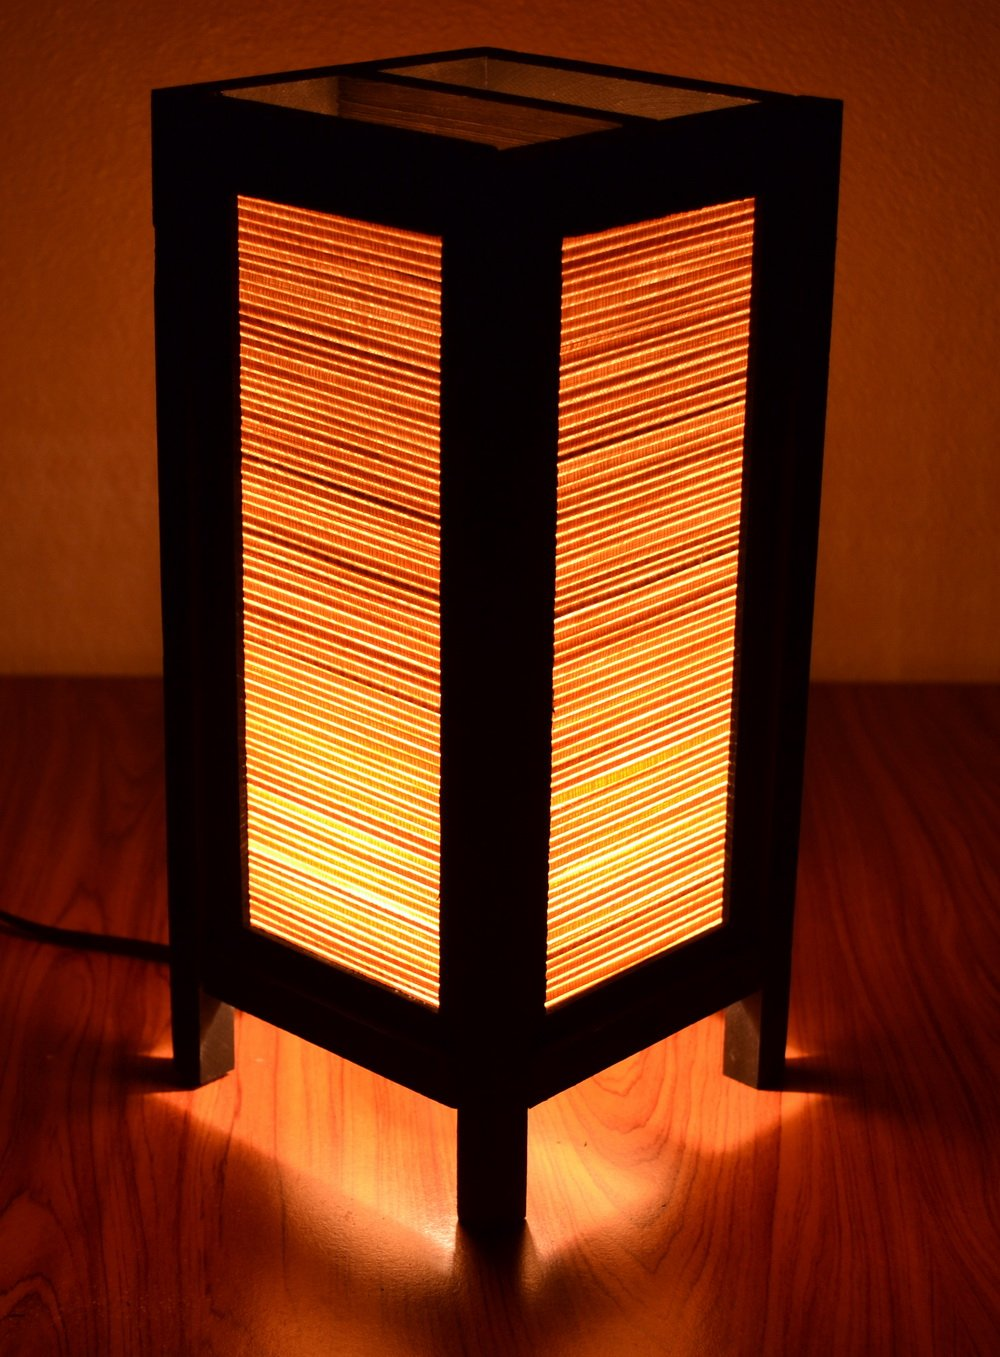 Decorative Lamp Thai Vintage Handmade Asian Oriental Original Bamboo Blind Bedside Table Light Floor Wood Paper Lamp Shades Home Bedroom Garden Decoration Modern Design by I Love Handicraft